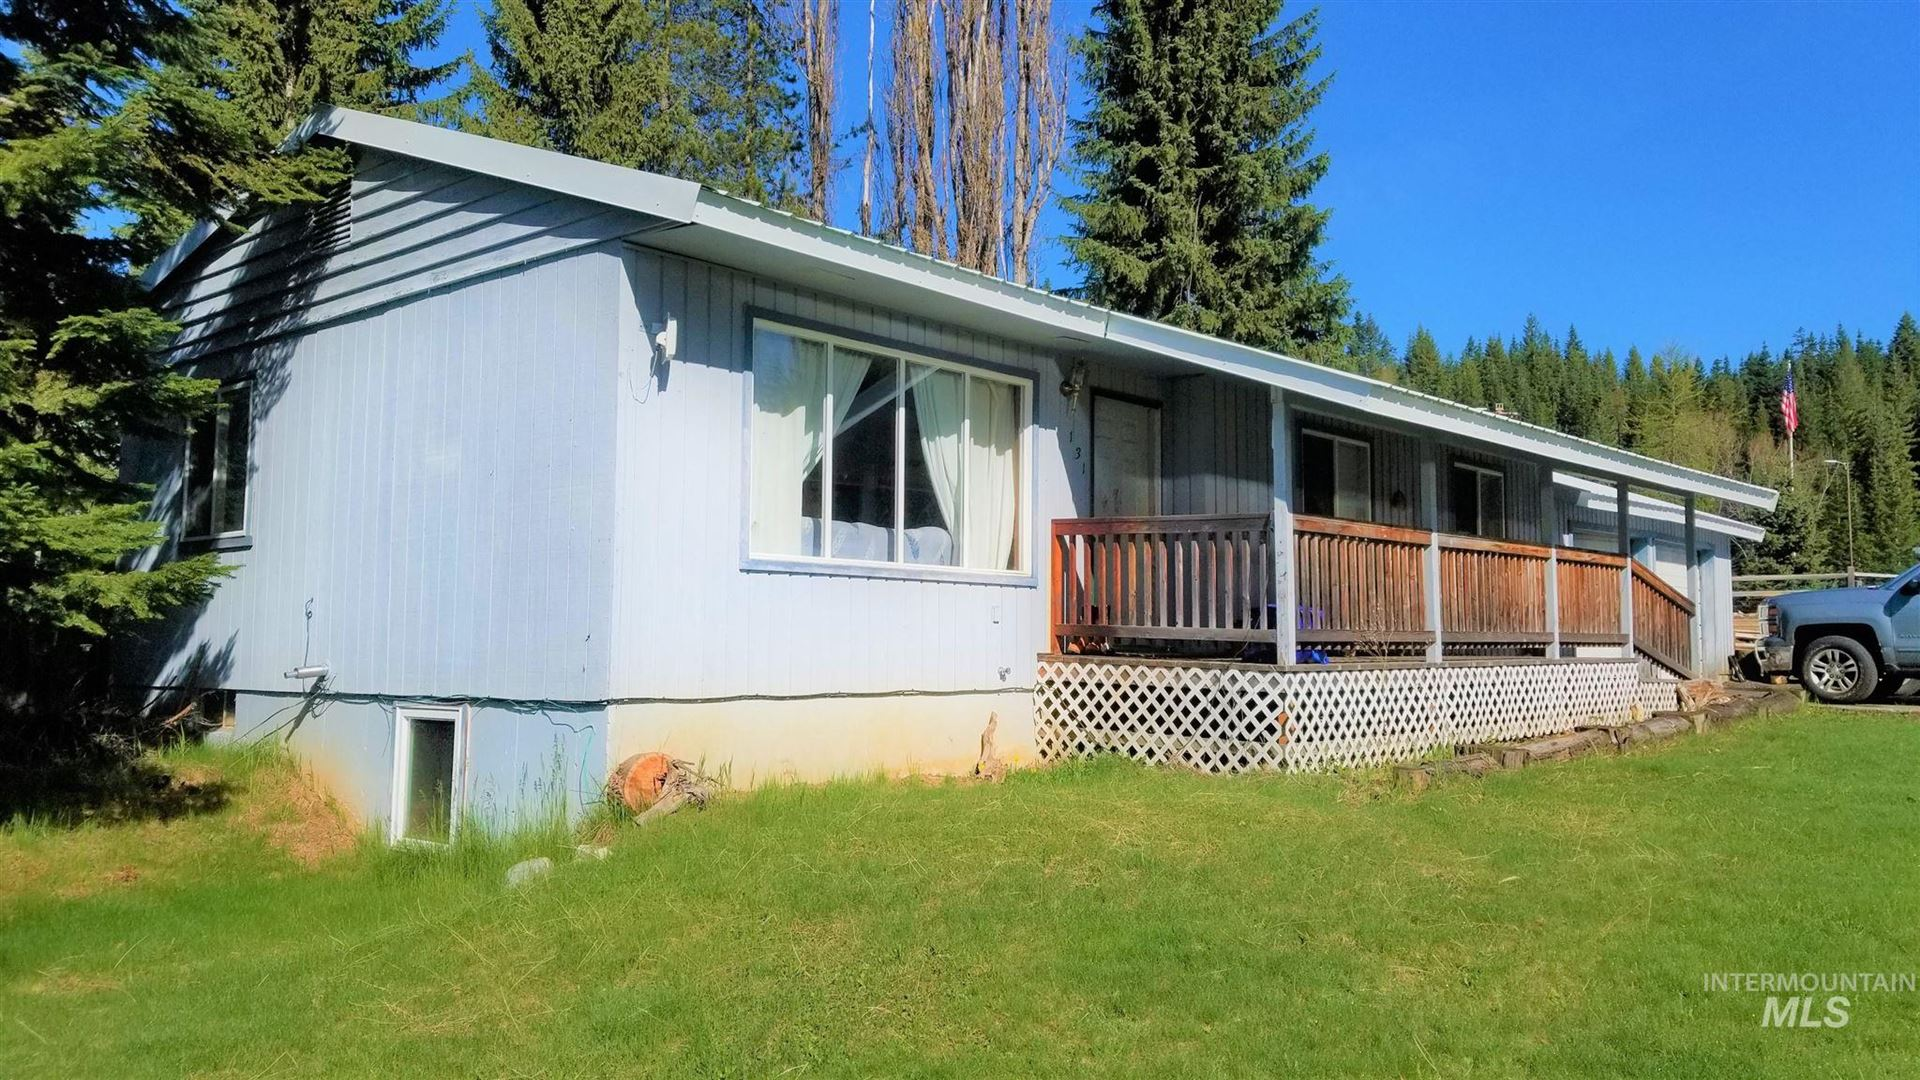 Photo of 131 Timberline Drive, Pierce, ID 83546 (MLS # 98798604)